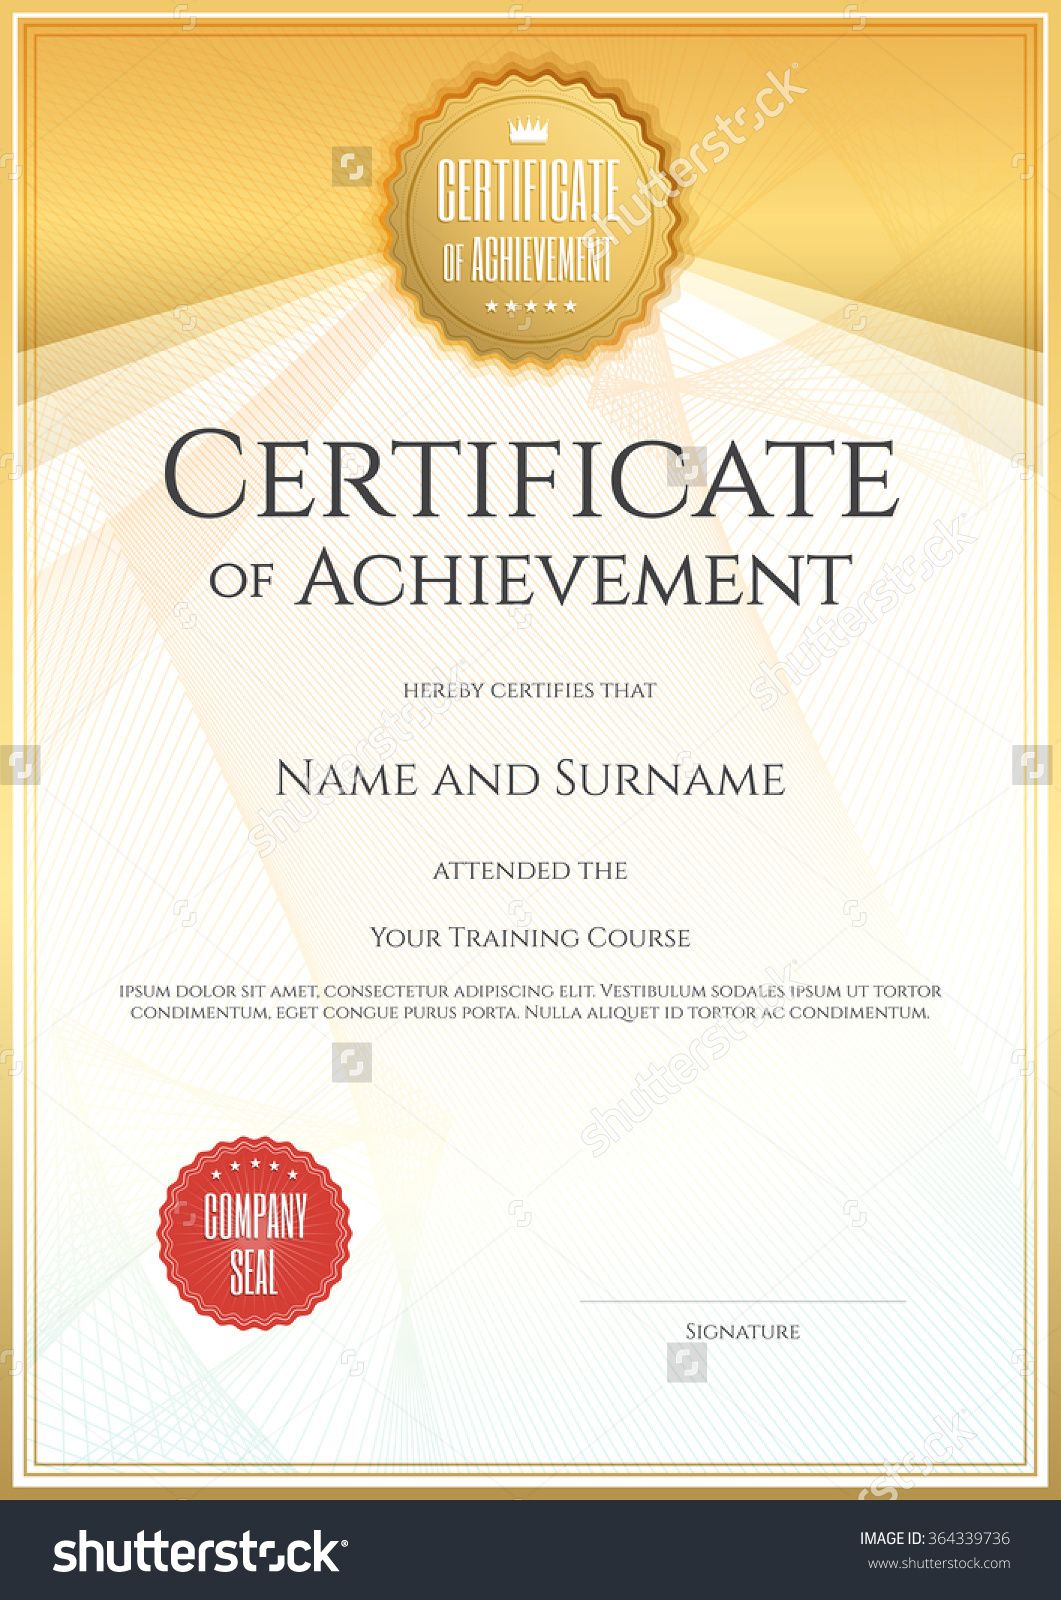 royalty free stock Design format sample of. Vector certificate completion